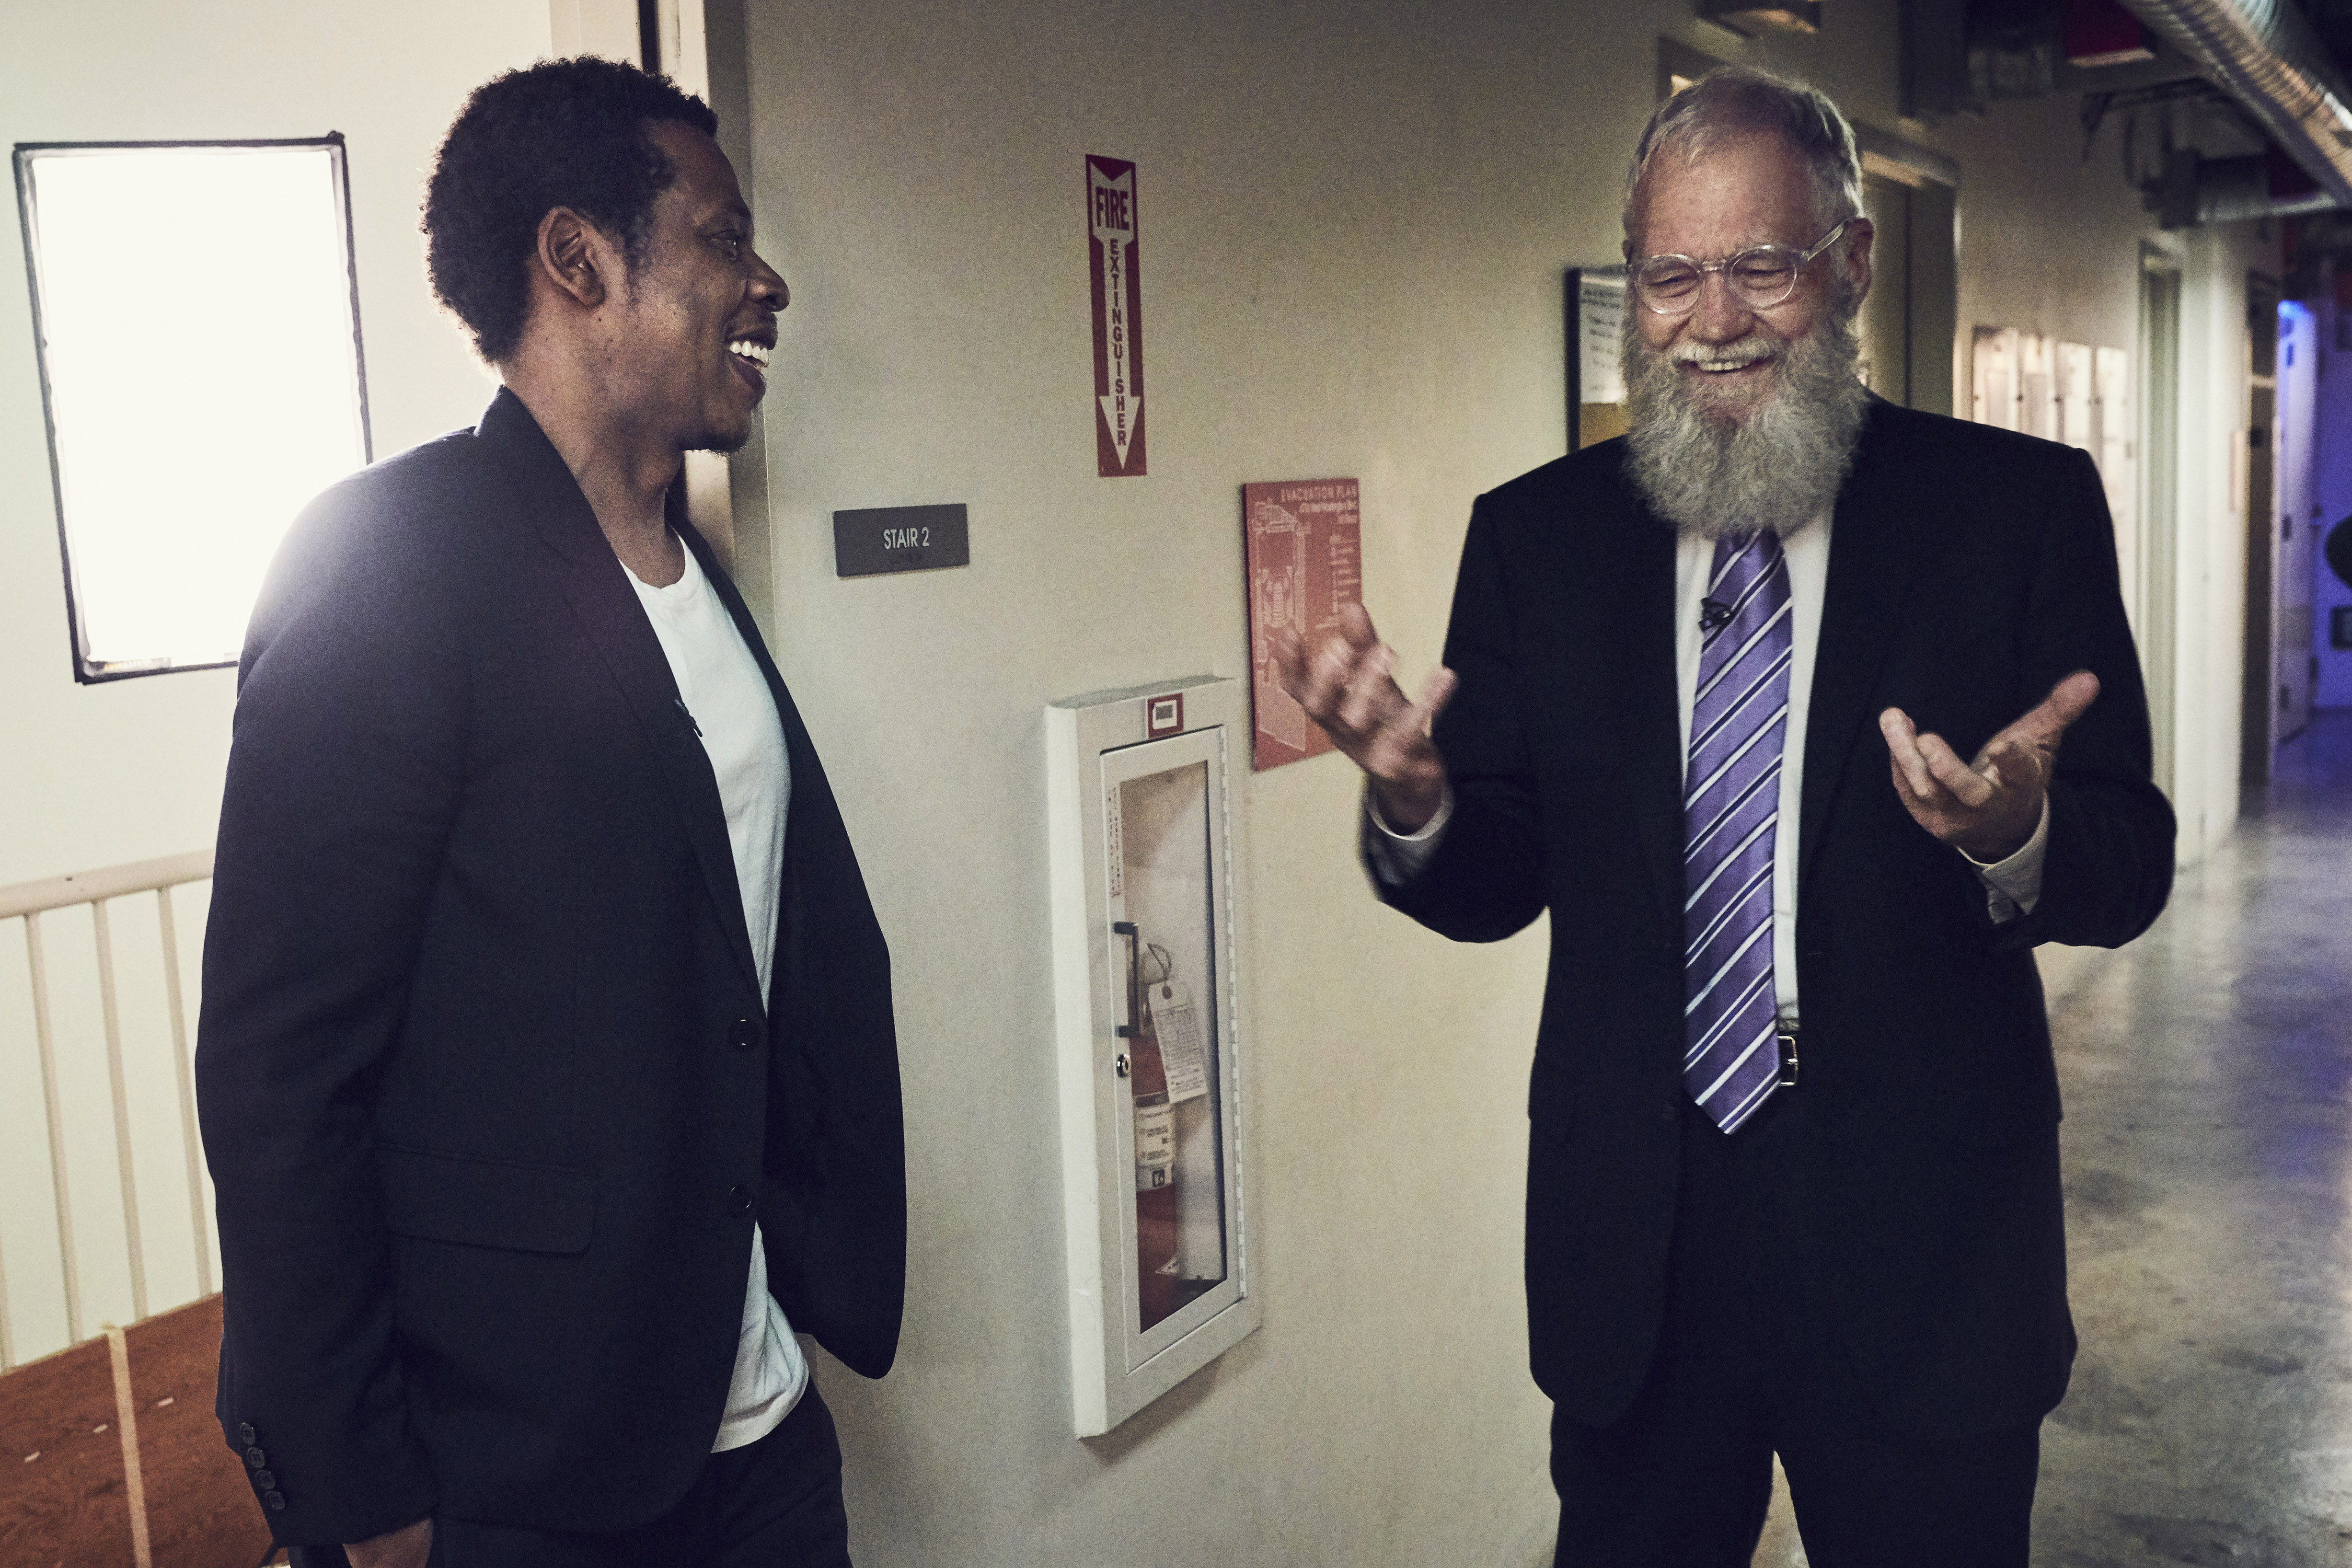 Jay-Z opens up to David Letterman about cheating on Beyoncé and his